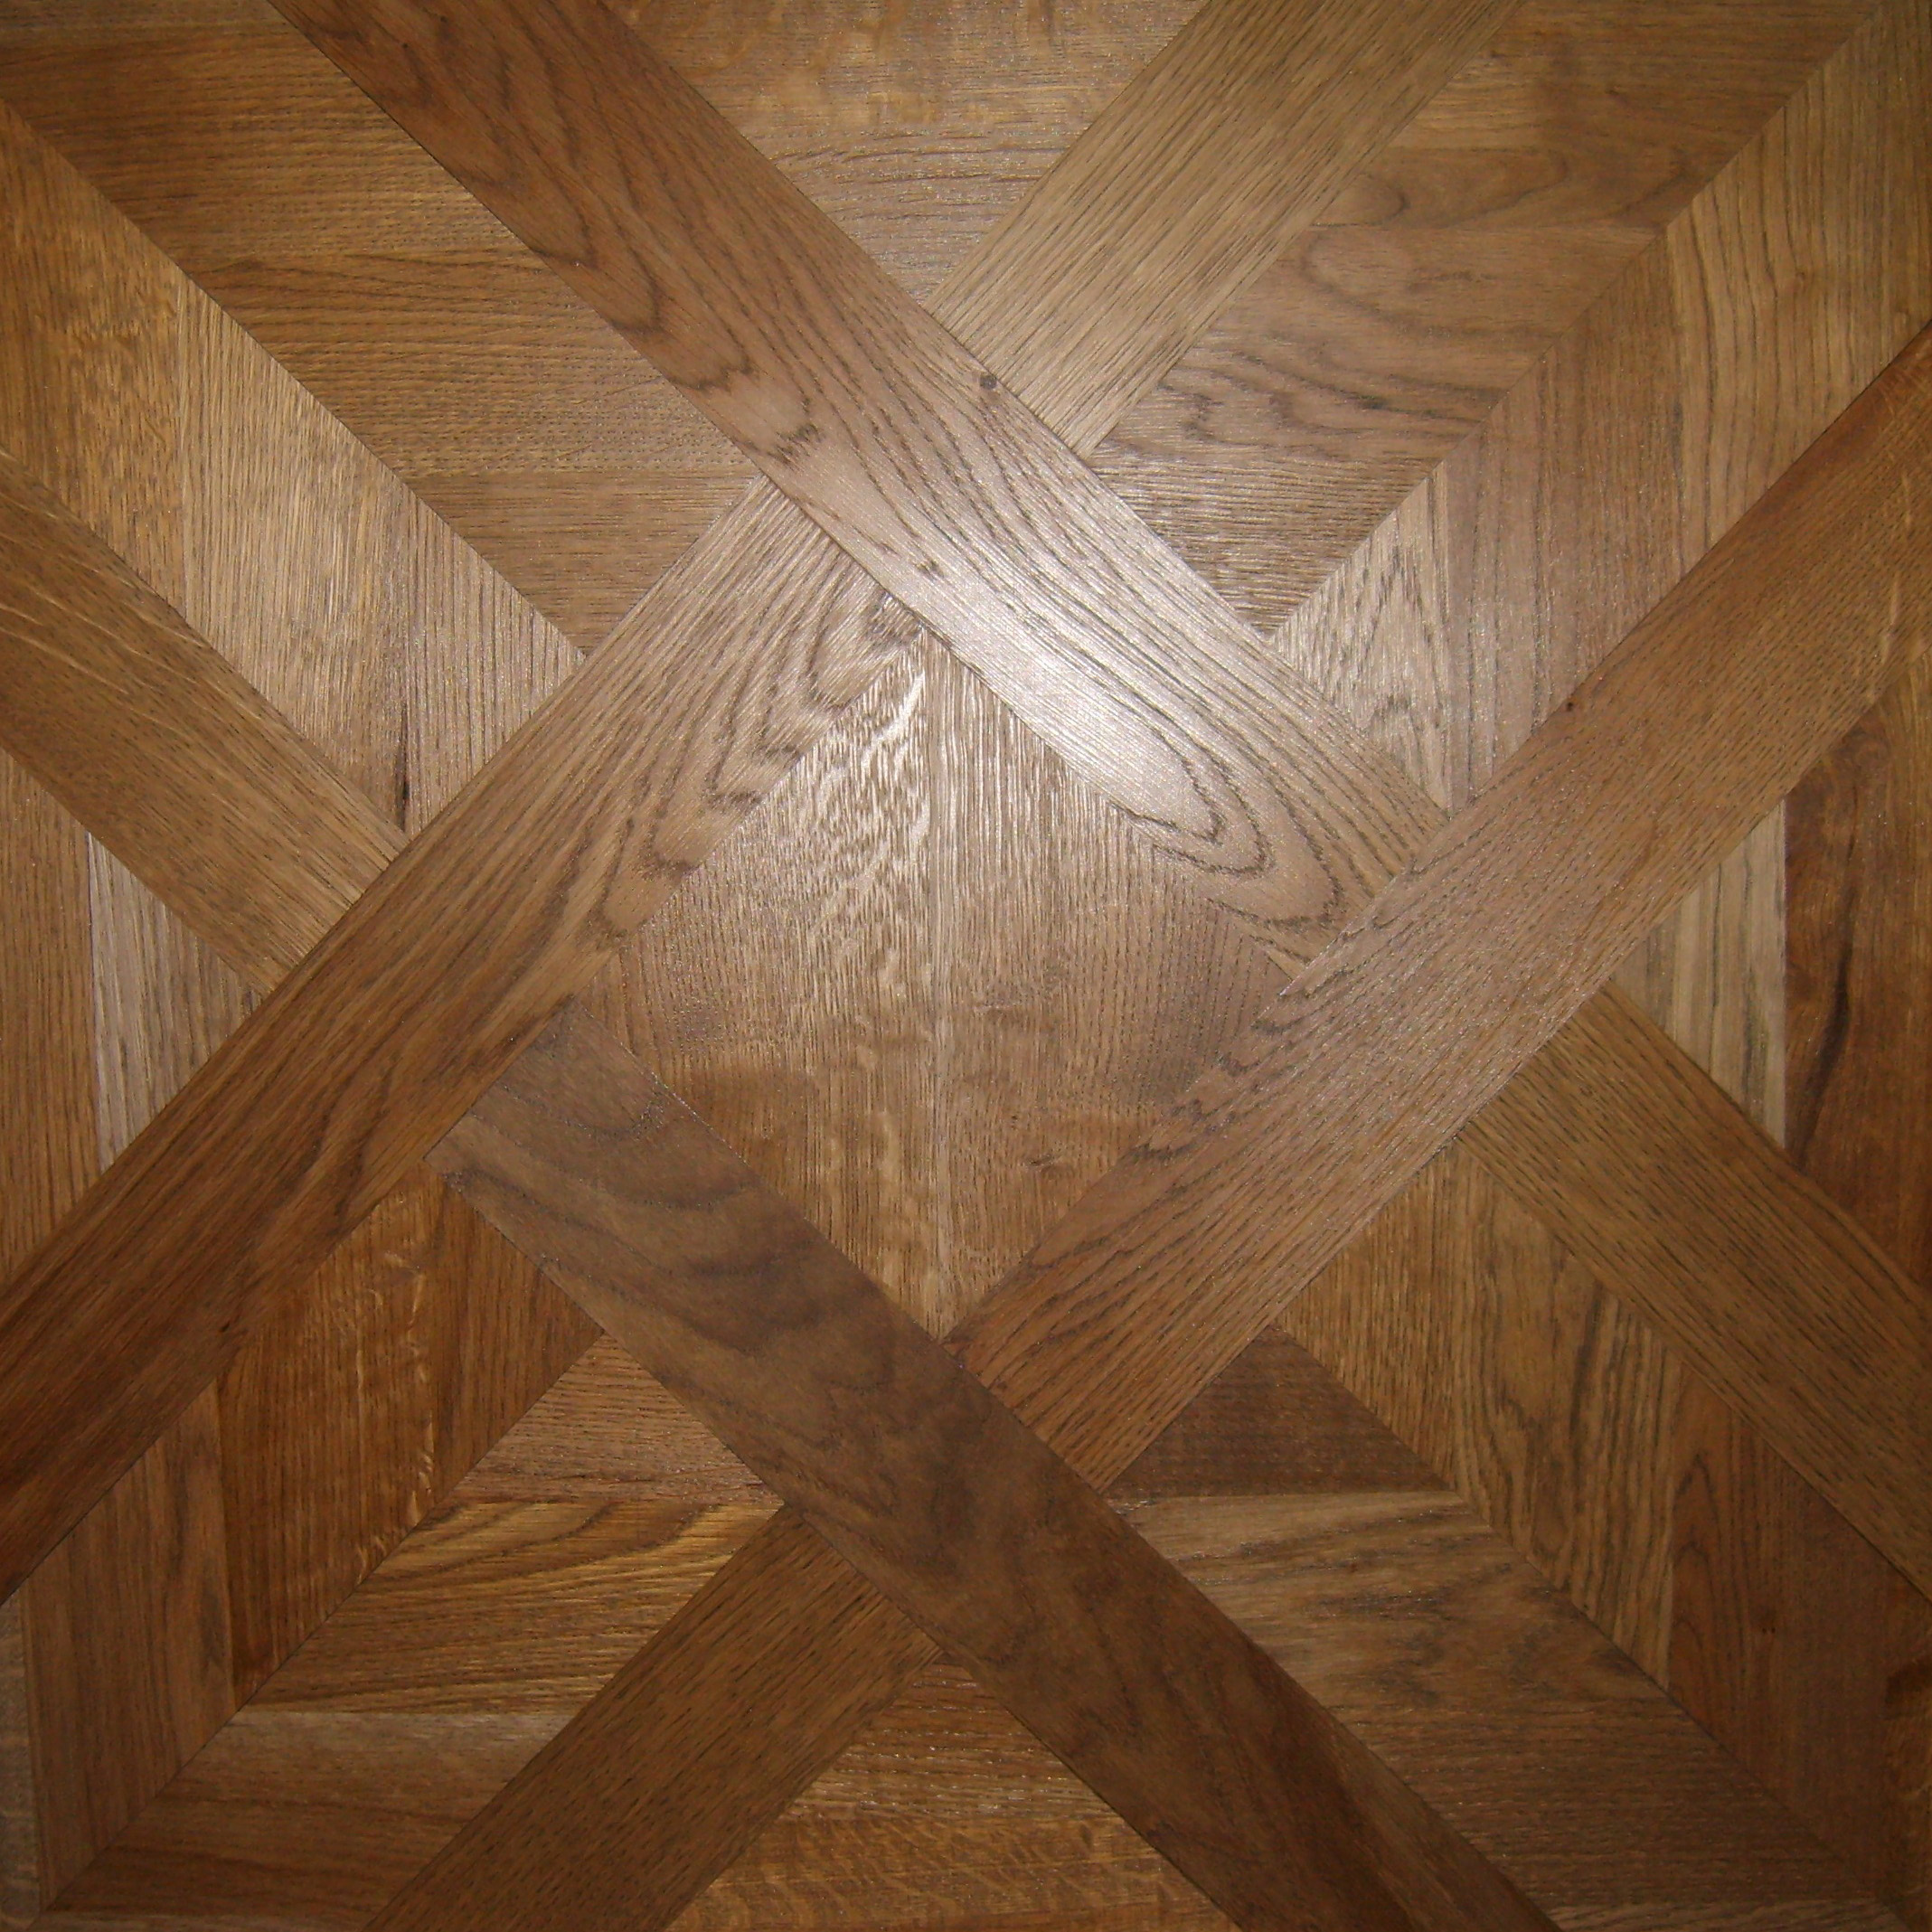 3.Maria Loretto oak panel